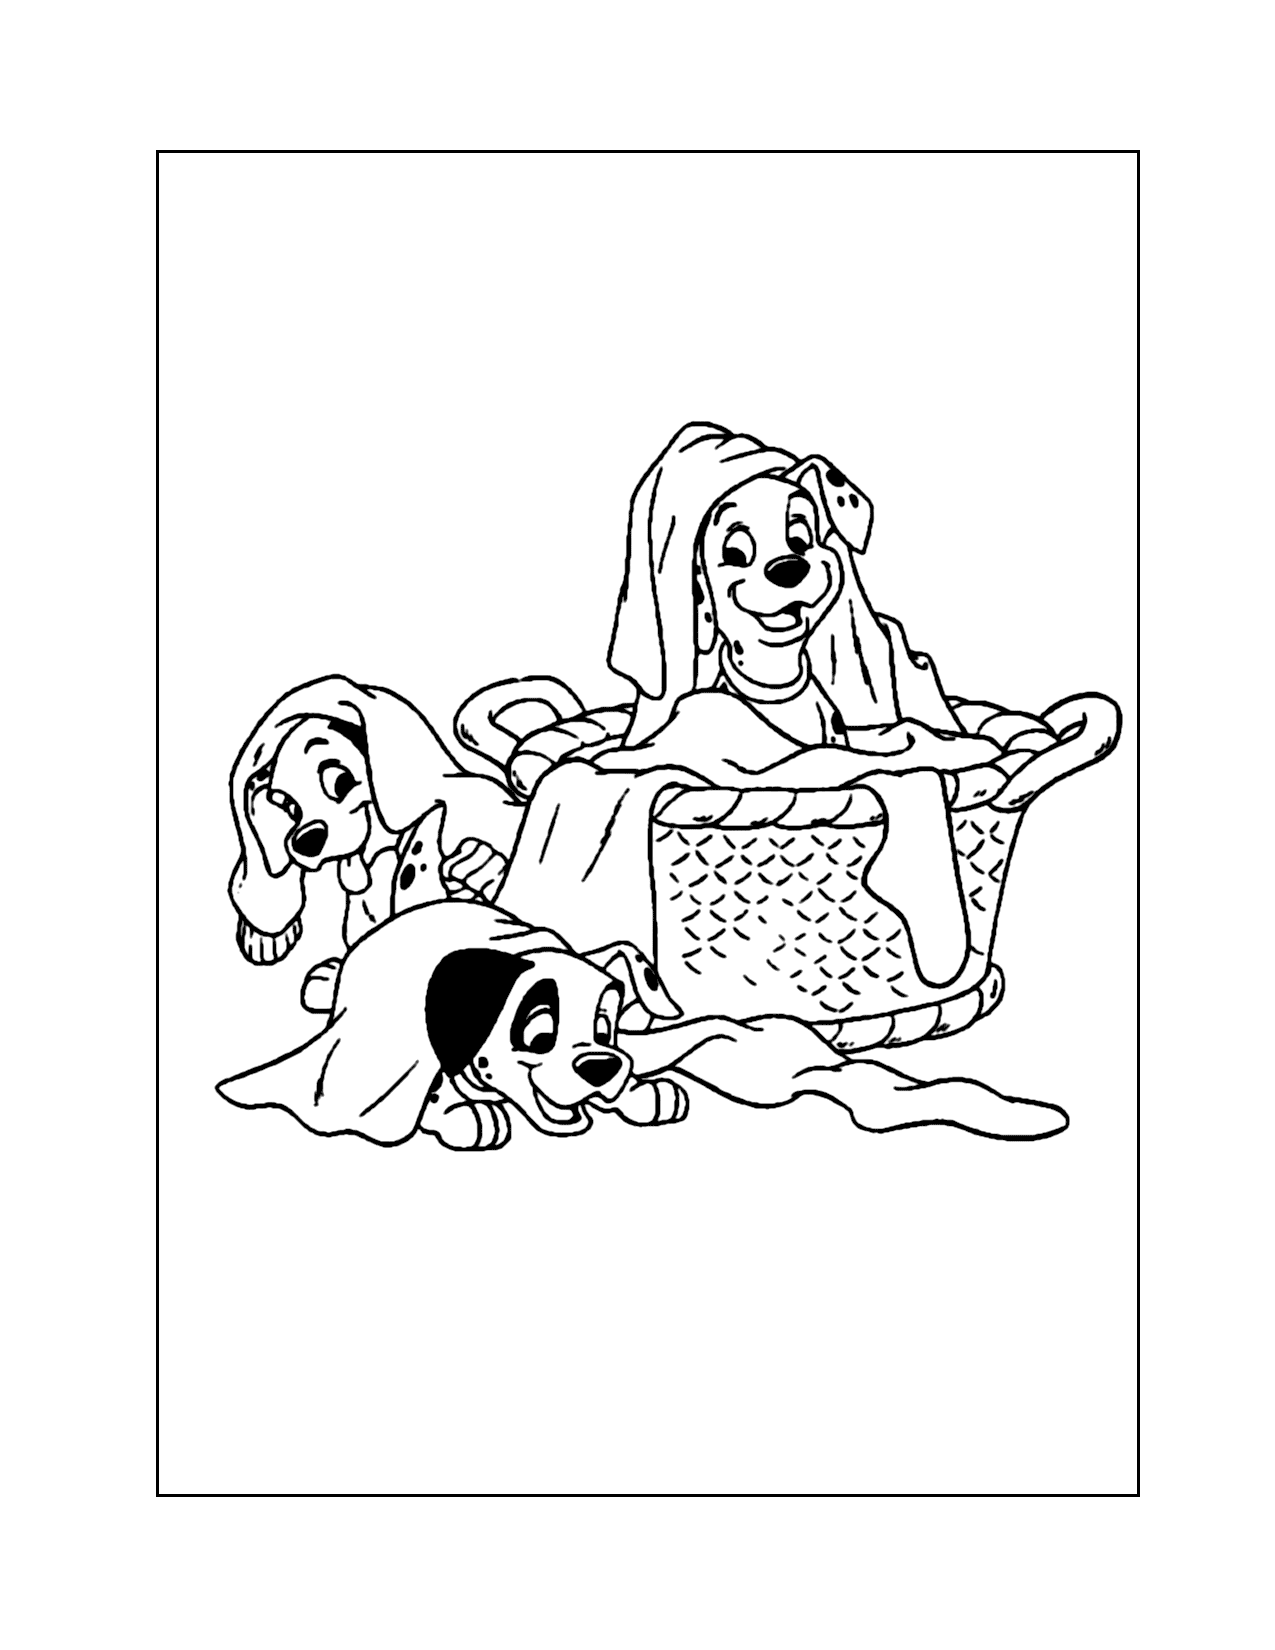 Dalmatians In The Laundry Coloring Page